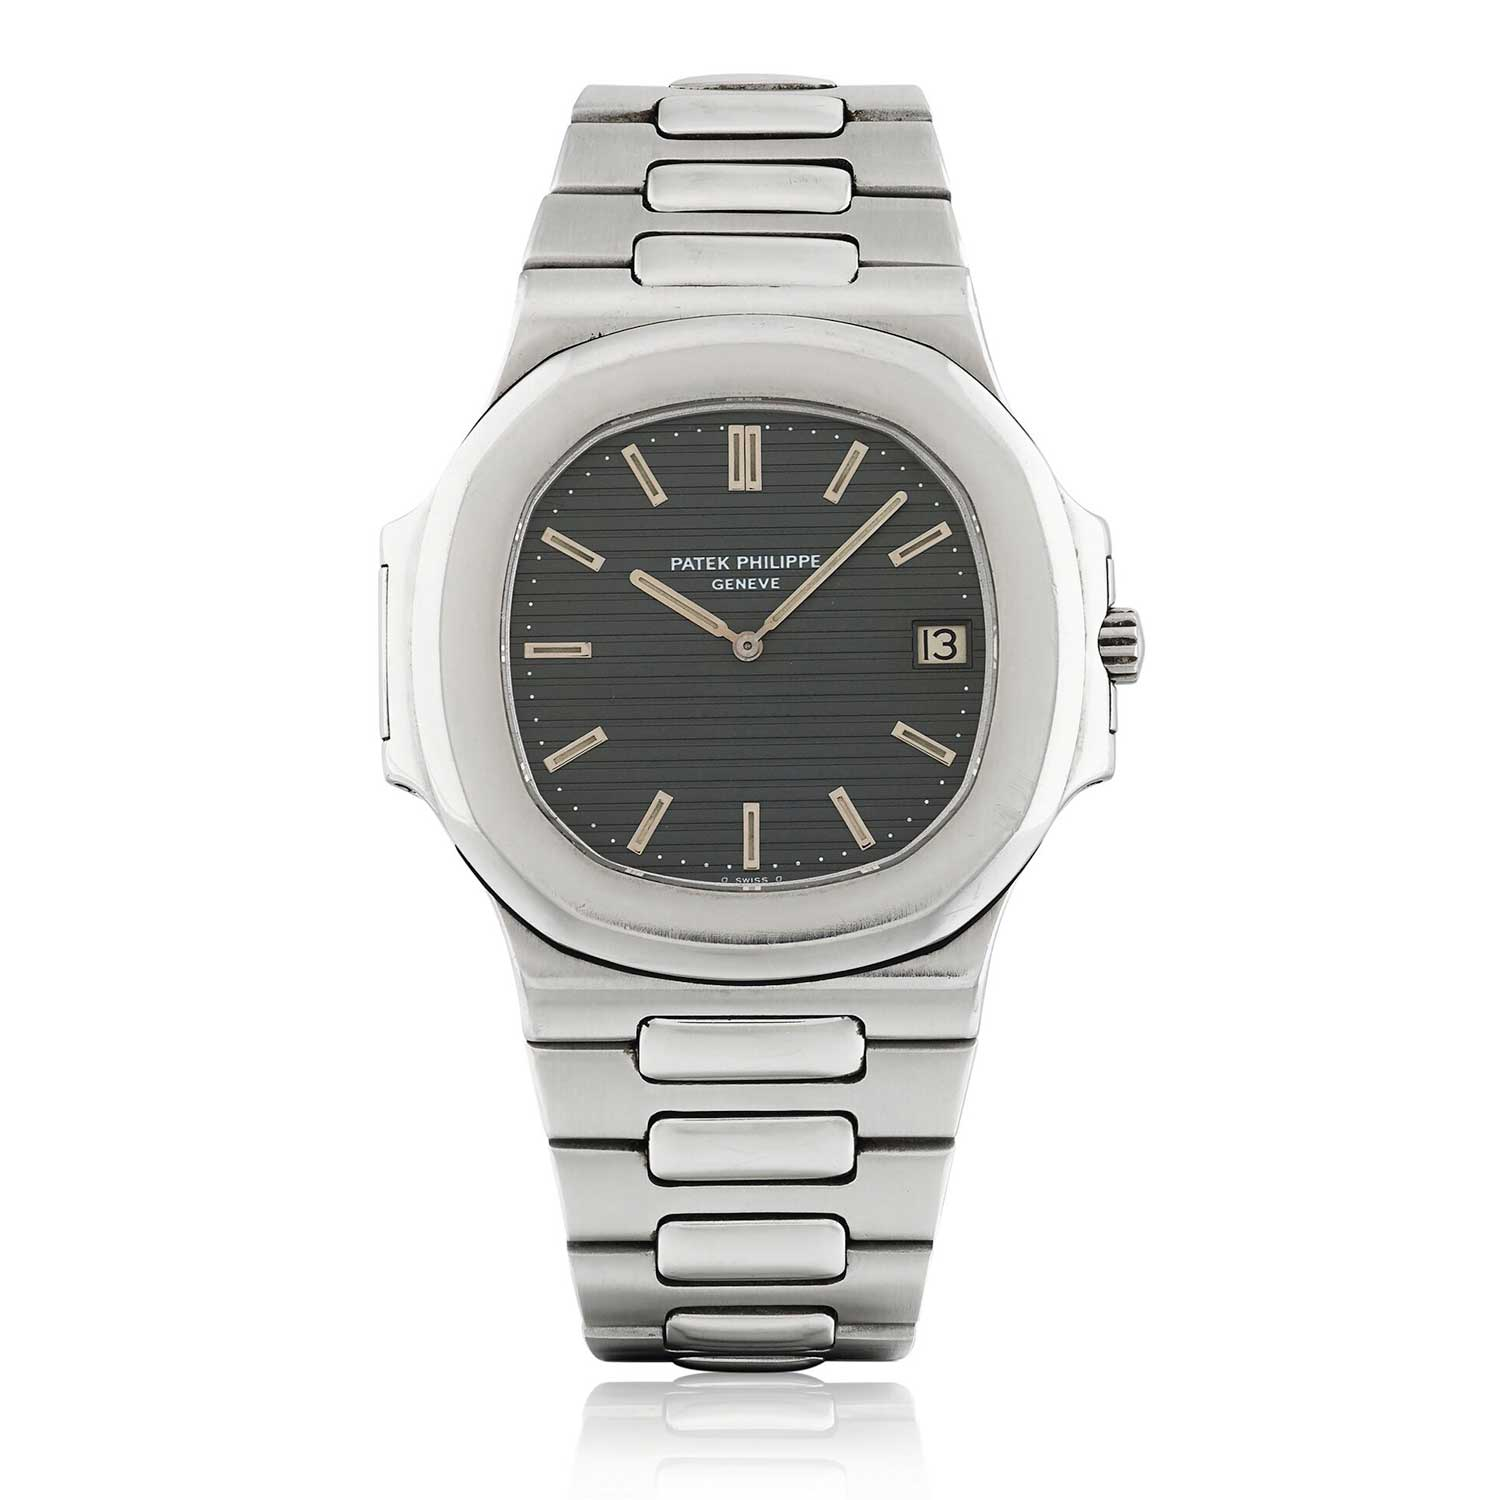 Another design of Gerald Genta's, the 40mm Patek Philippe stainless steel Nautilus ref. 3700/001 was introduced in 1977 (Image: sothebys.com)